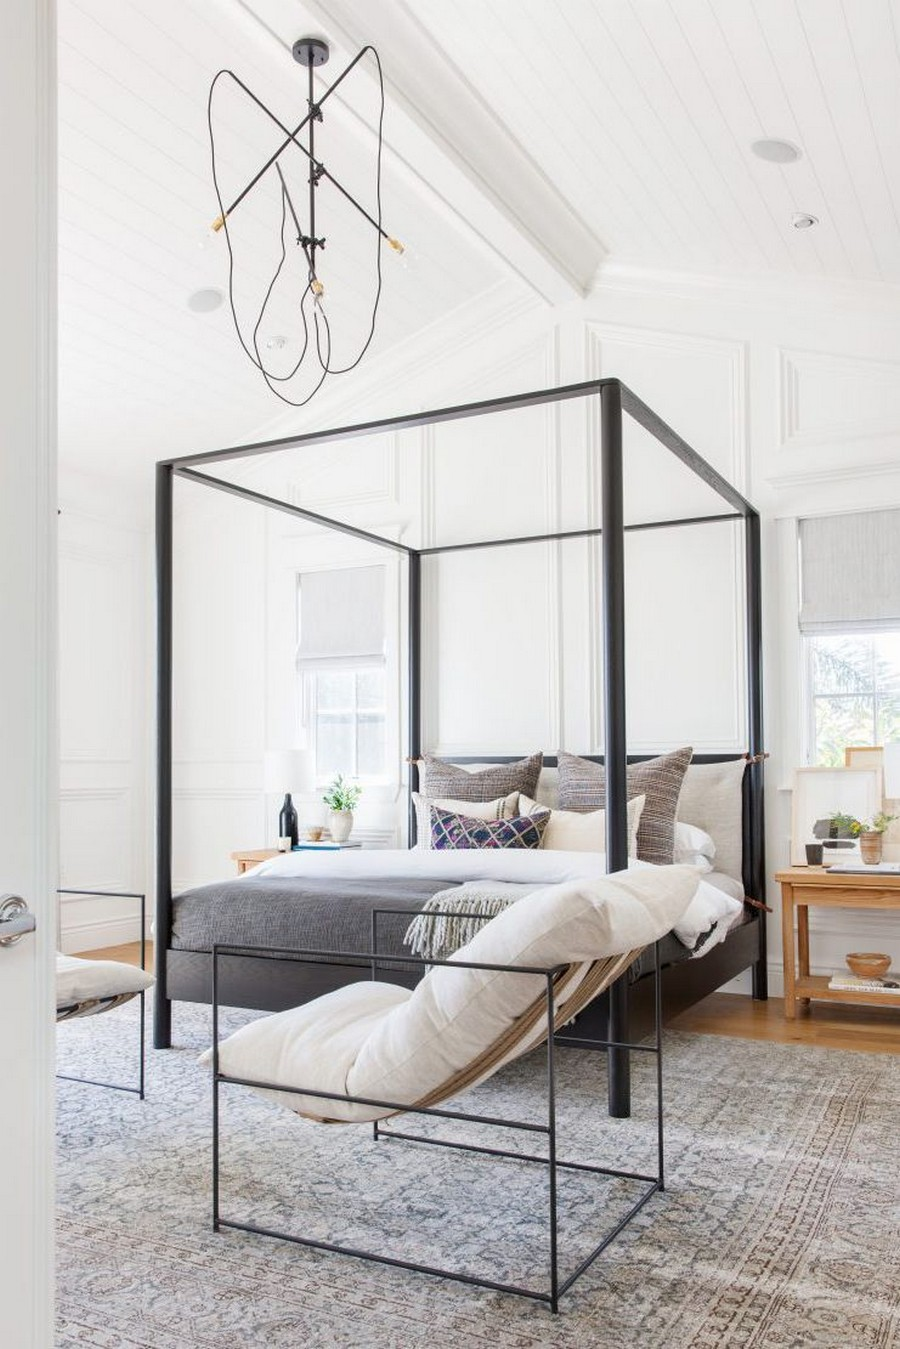 7 Ultimate Ways To Light Up Your Bedroom Decor Bedroom Decor 7 Ultimate Ways To Light Up Your Bedroom Decor 7 Ultimate Ways To Light Up Your Bedroom Decor 3